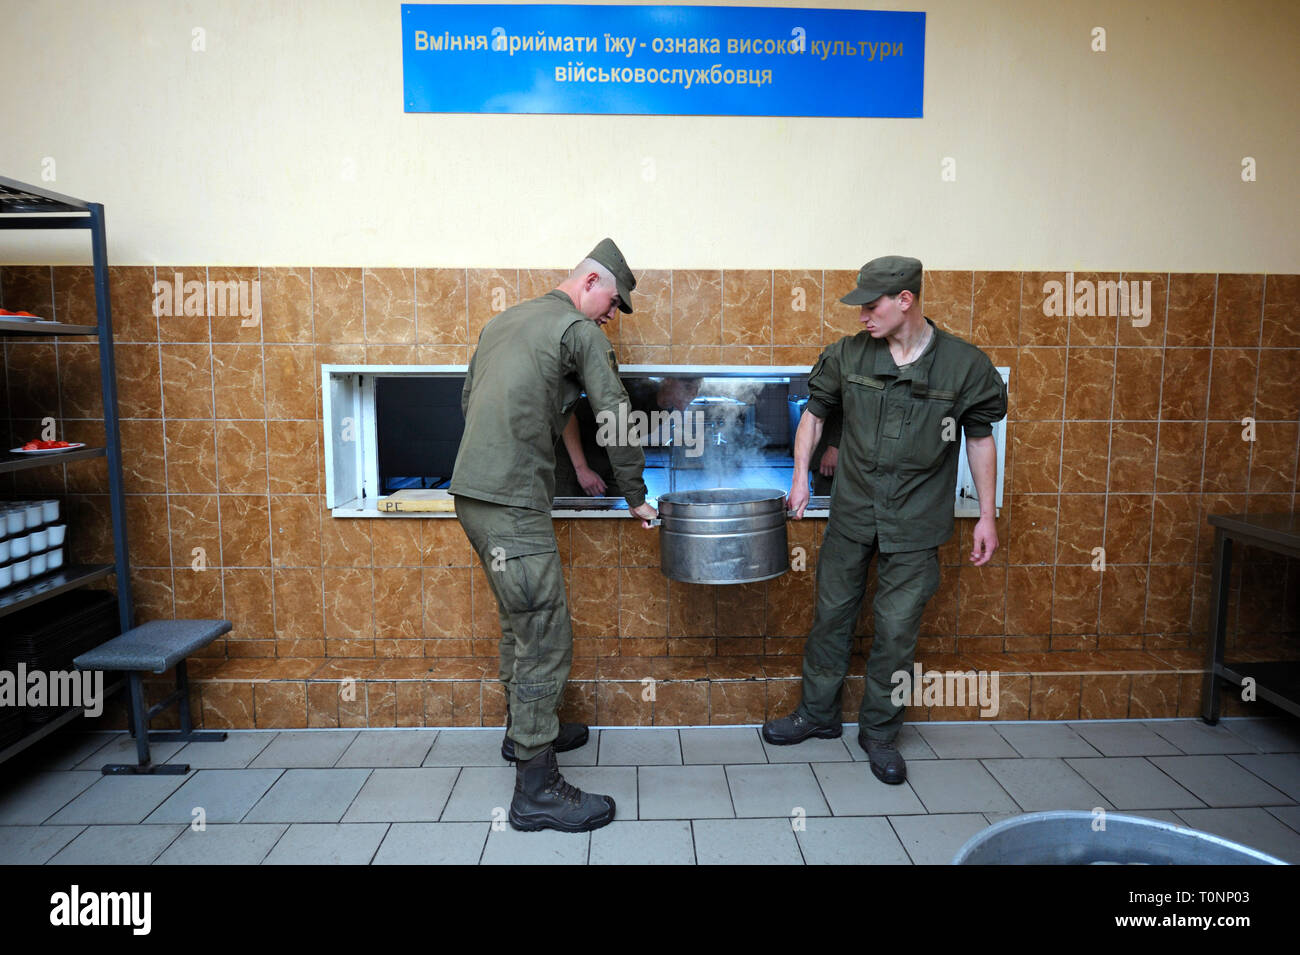 At a chow hall: kitchen workers carrying pot with ready meal for soldiers. Novo-Petrivtsi military base, Ukraine. November 12, 2018 - Stock Image